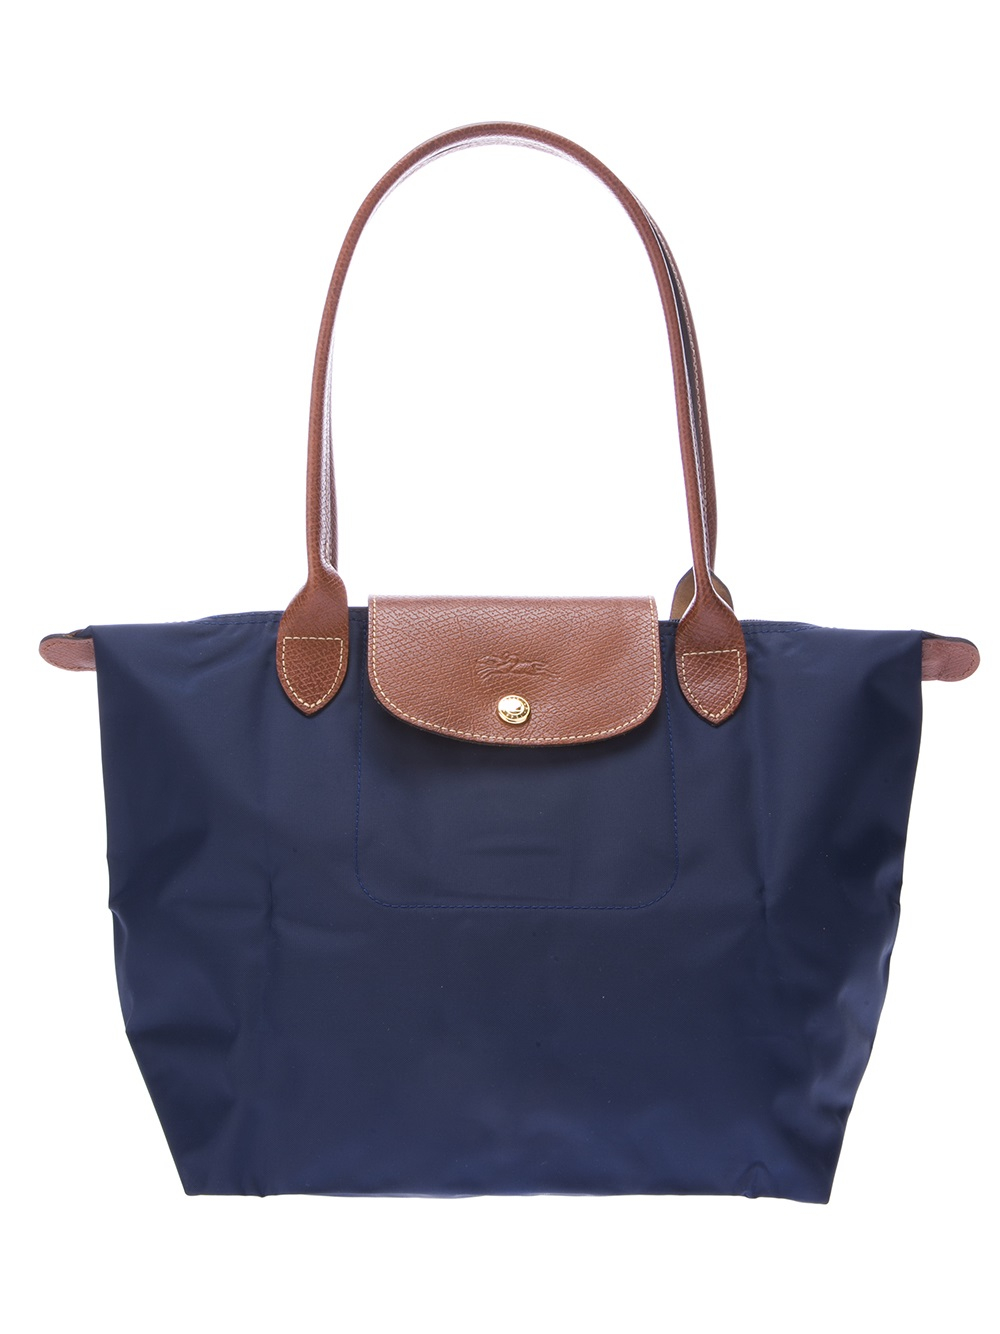 Longchamp Le Pliage Tote in Blue